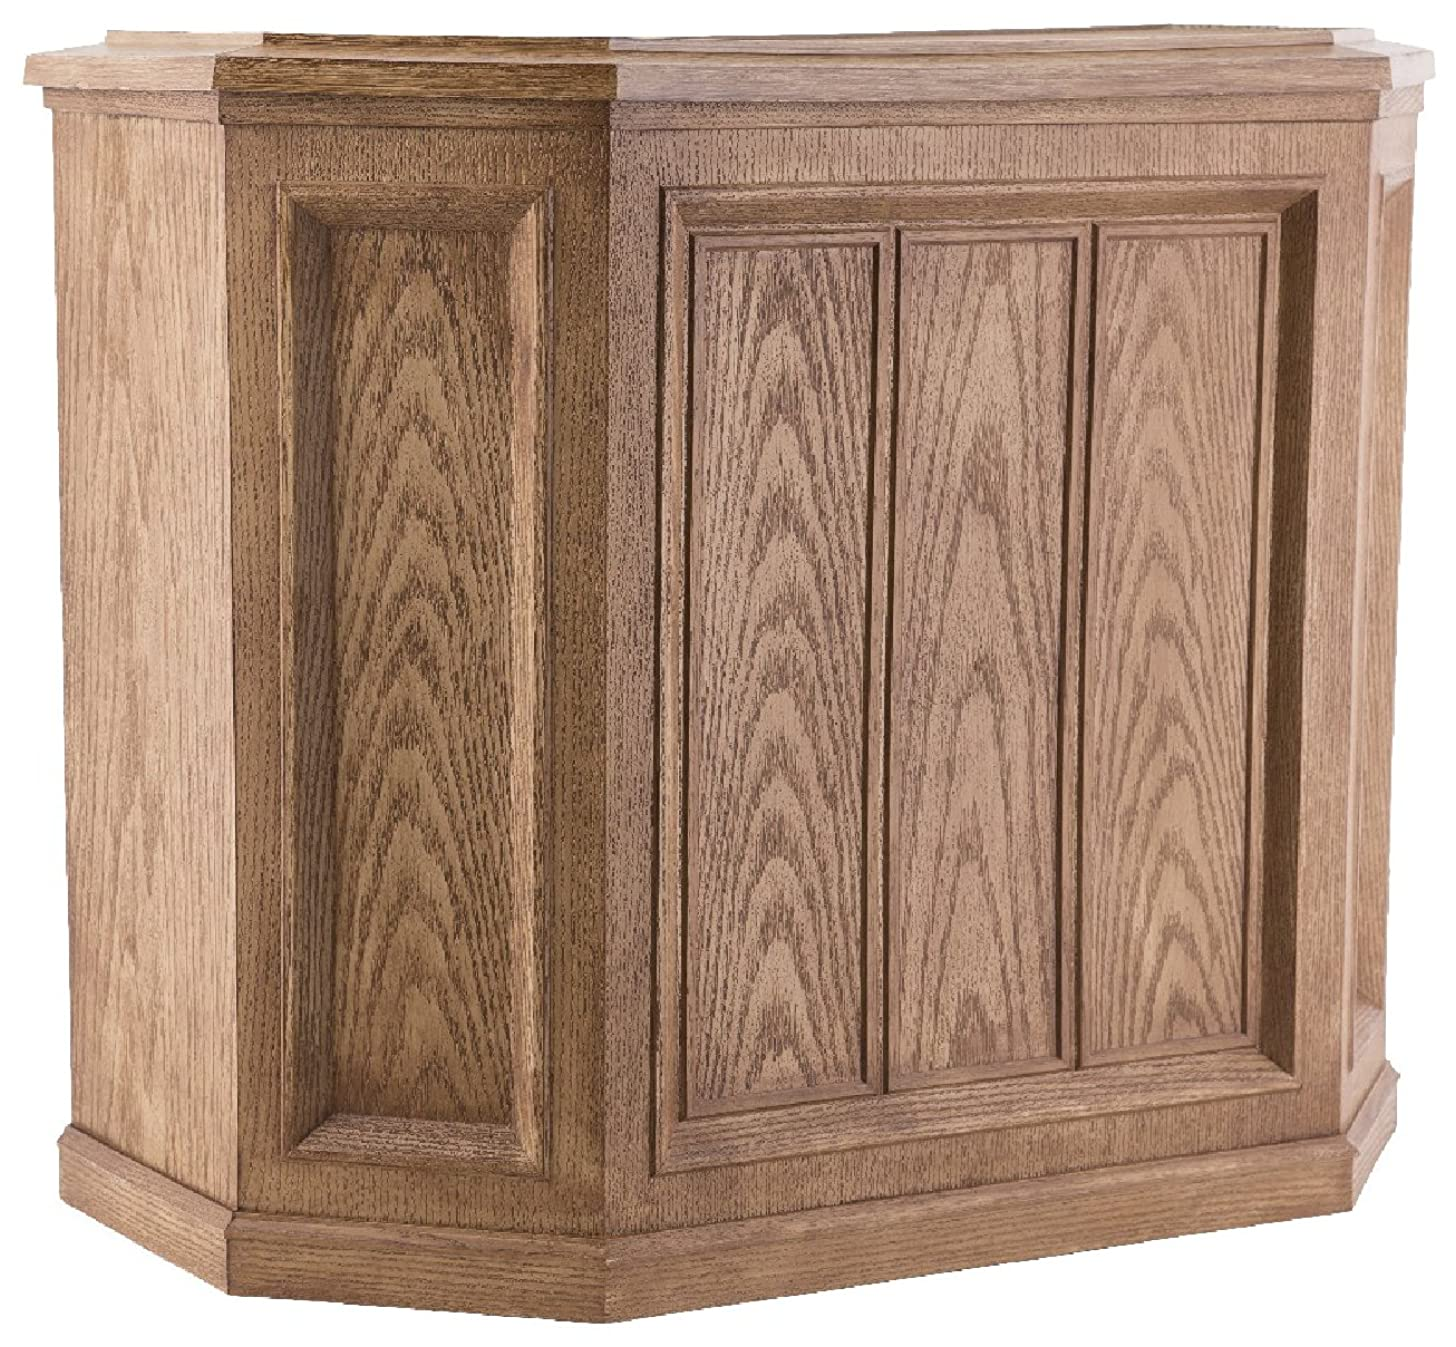 AIRCARE 696 400HB Whole House Credenza Evaporative Humidifier for 3600 sq. ft, Light Oak